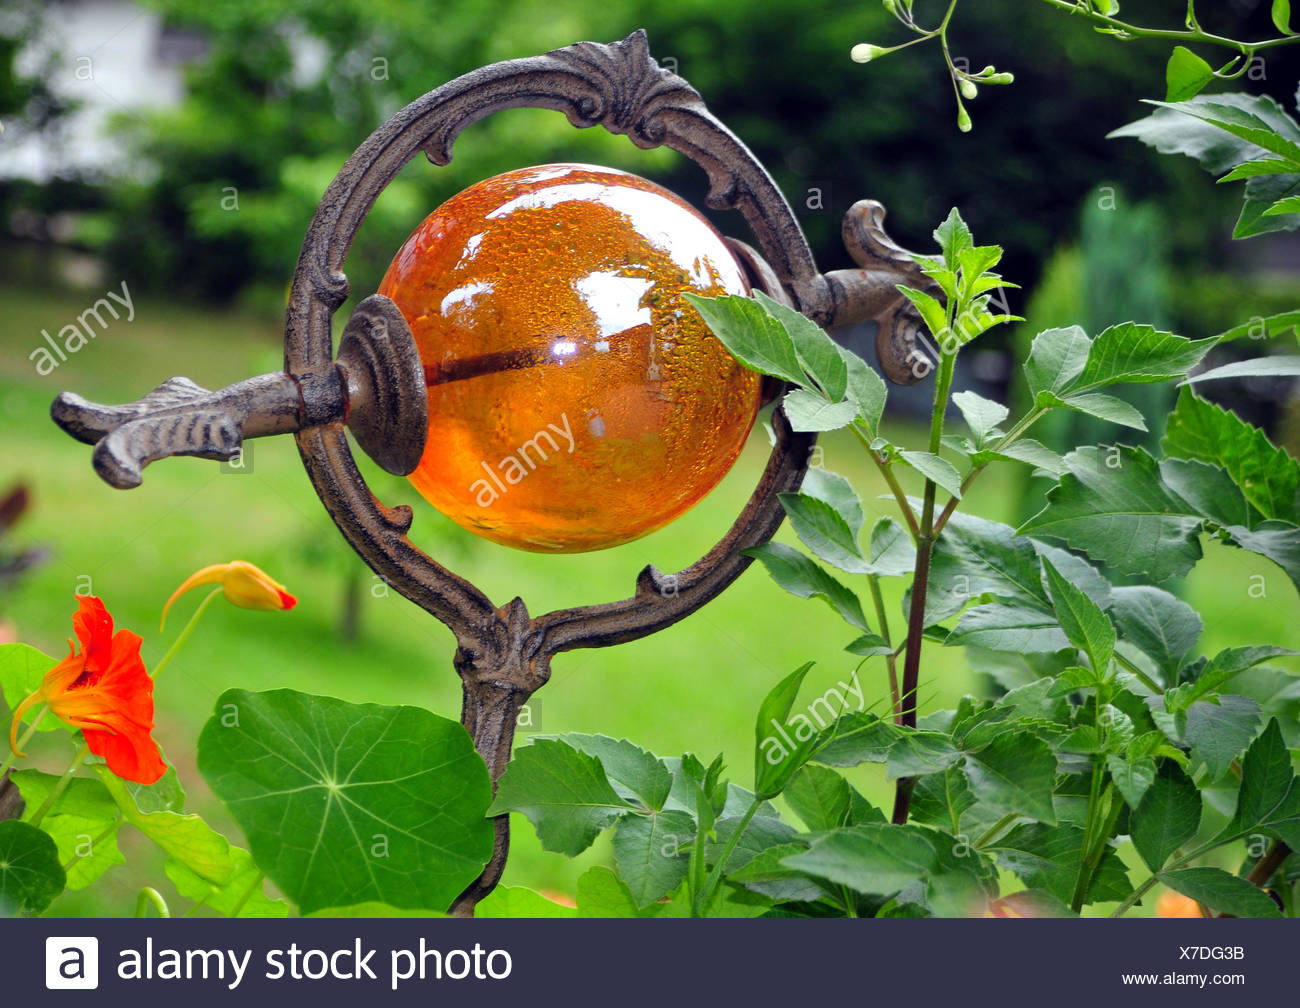 Glass Garden Ball Stock Photos & Glass Garden Ball Stock Images - Alamy